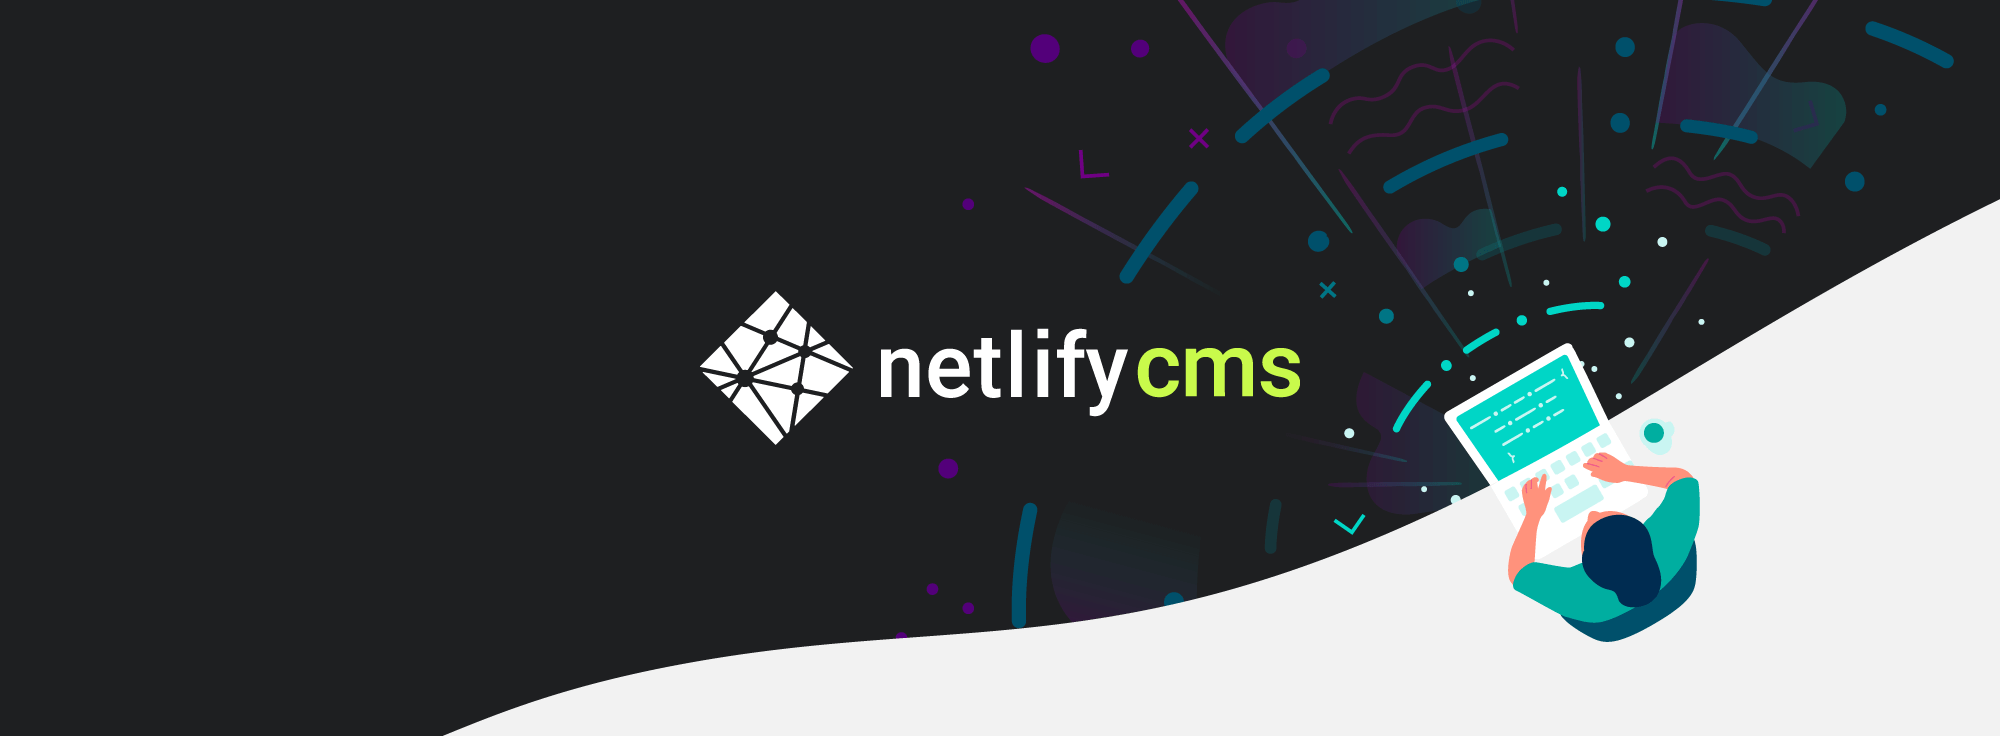 netlify cms integration